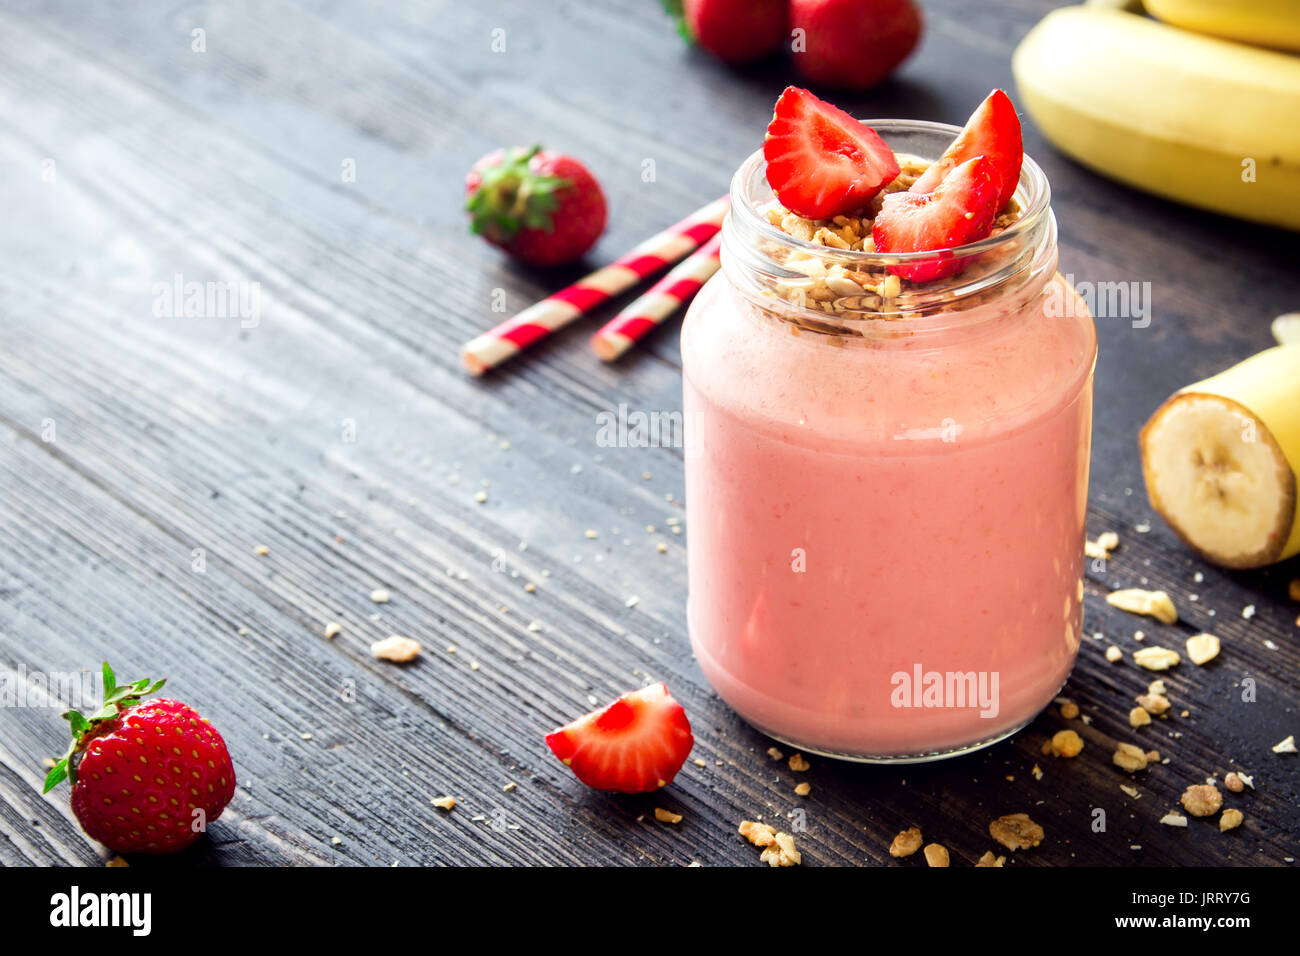 Strawberry and banana smoothie with homemade granola. Healthy breakfast or snack. Banana and strawberry smoothie in glass jar. - Stock Image